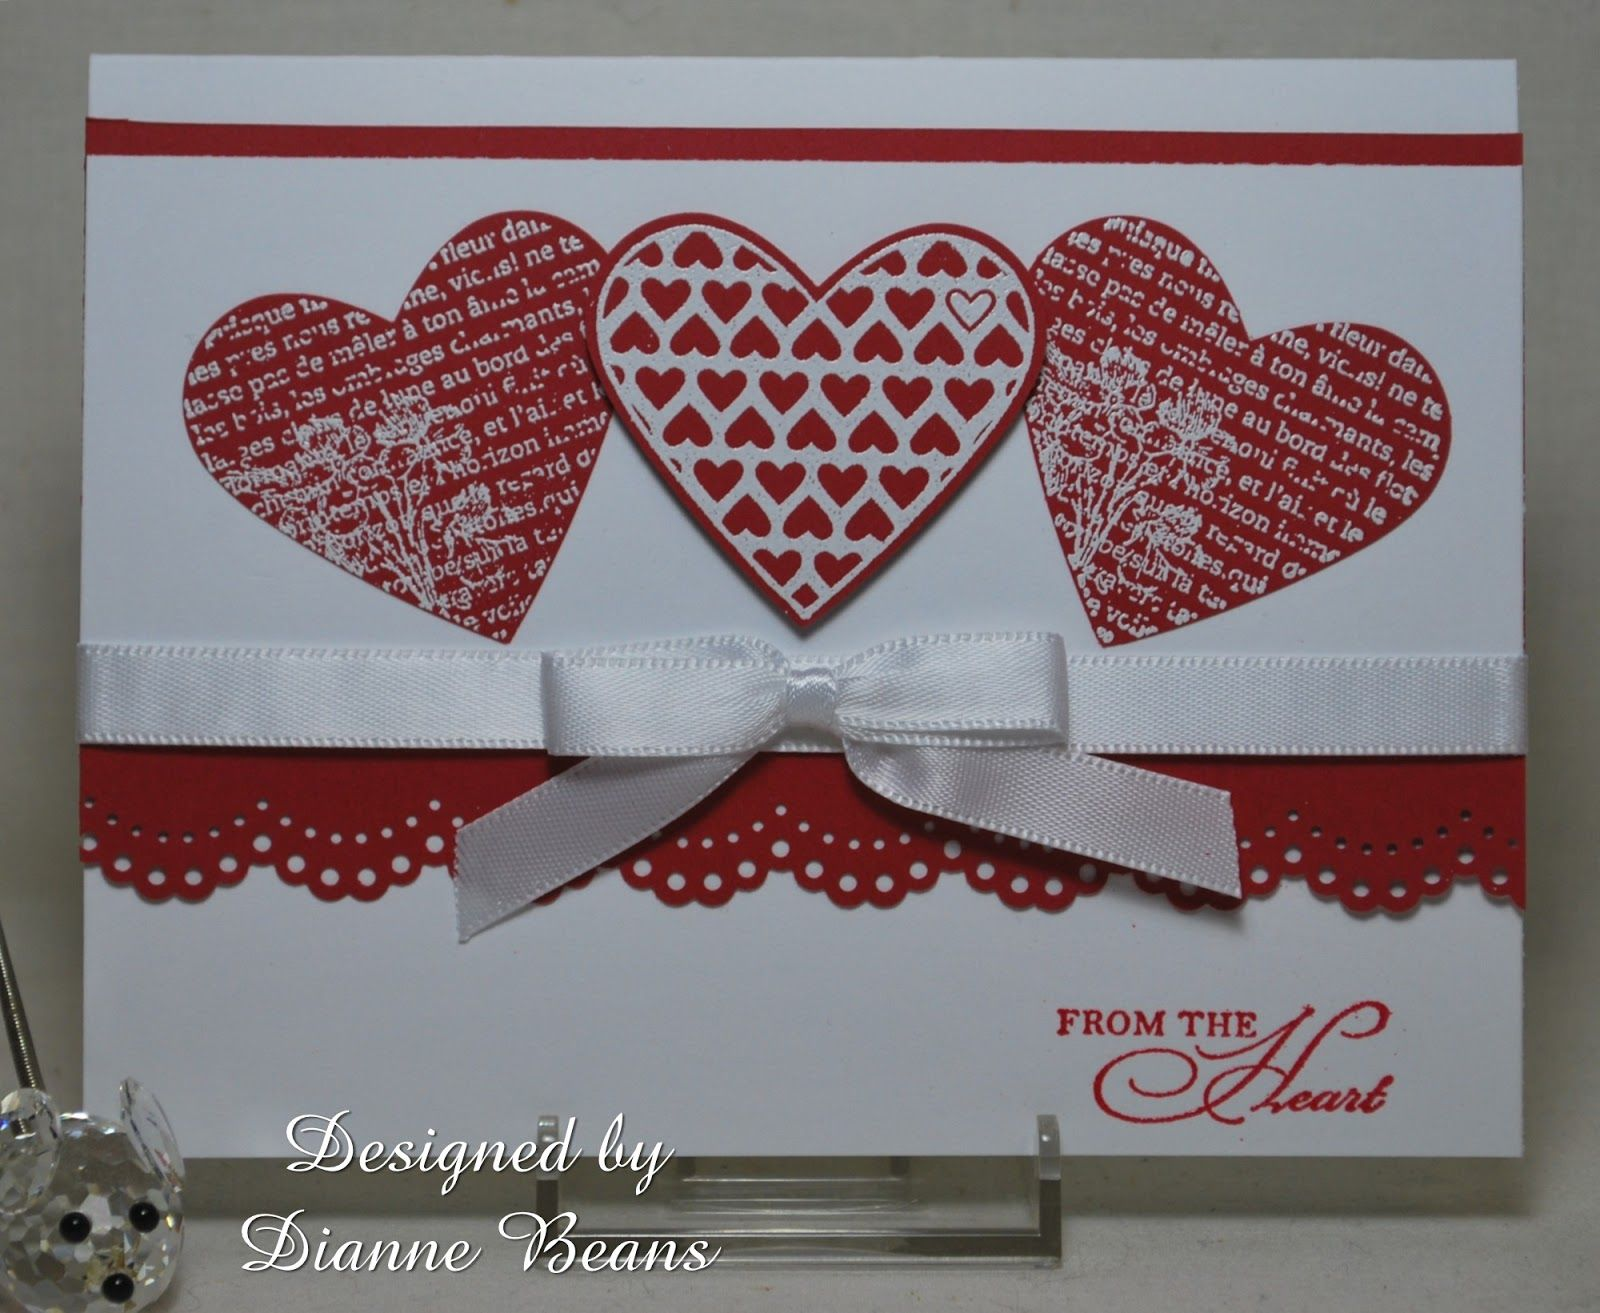 Stamping From The Heart Valentines Valentines Day Cards Handmade Valentine Cards Handmade Stampin Up Valentine Cards